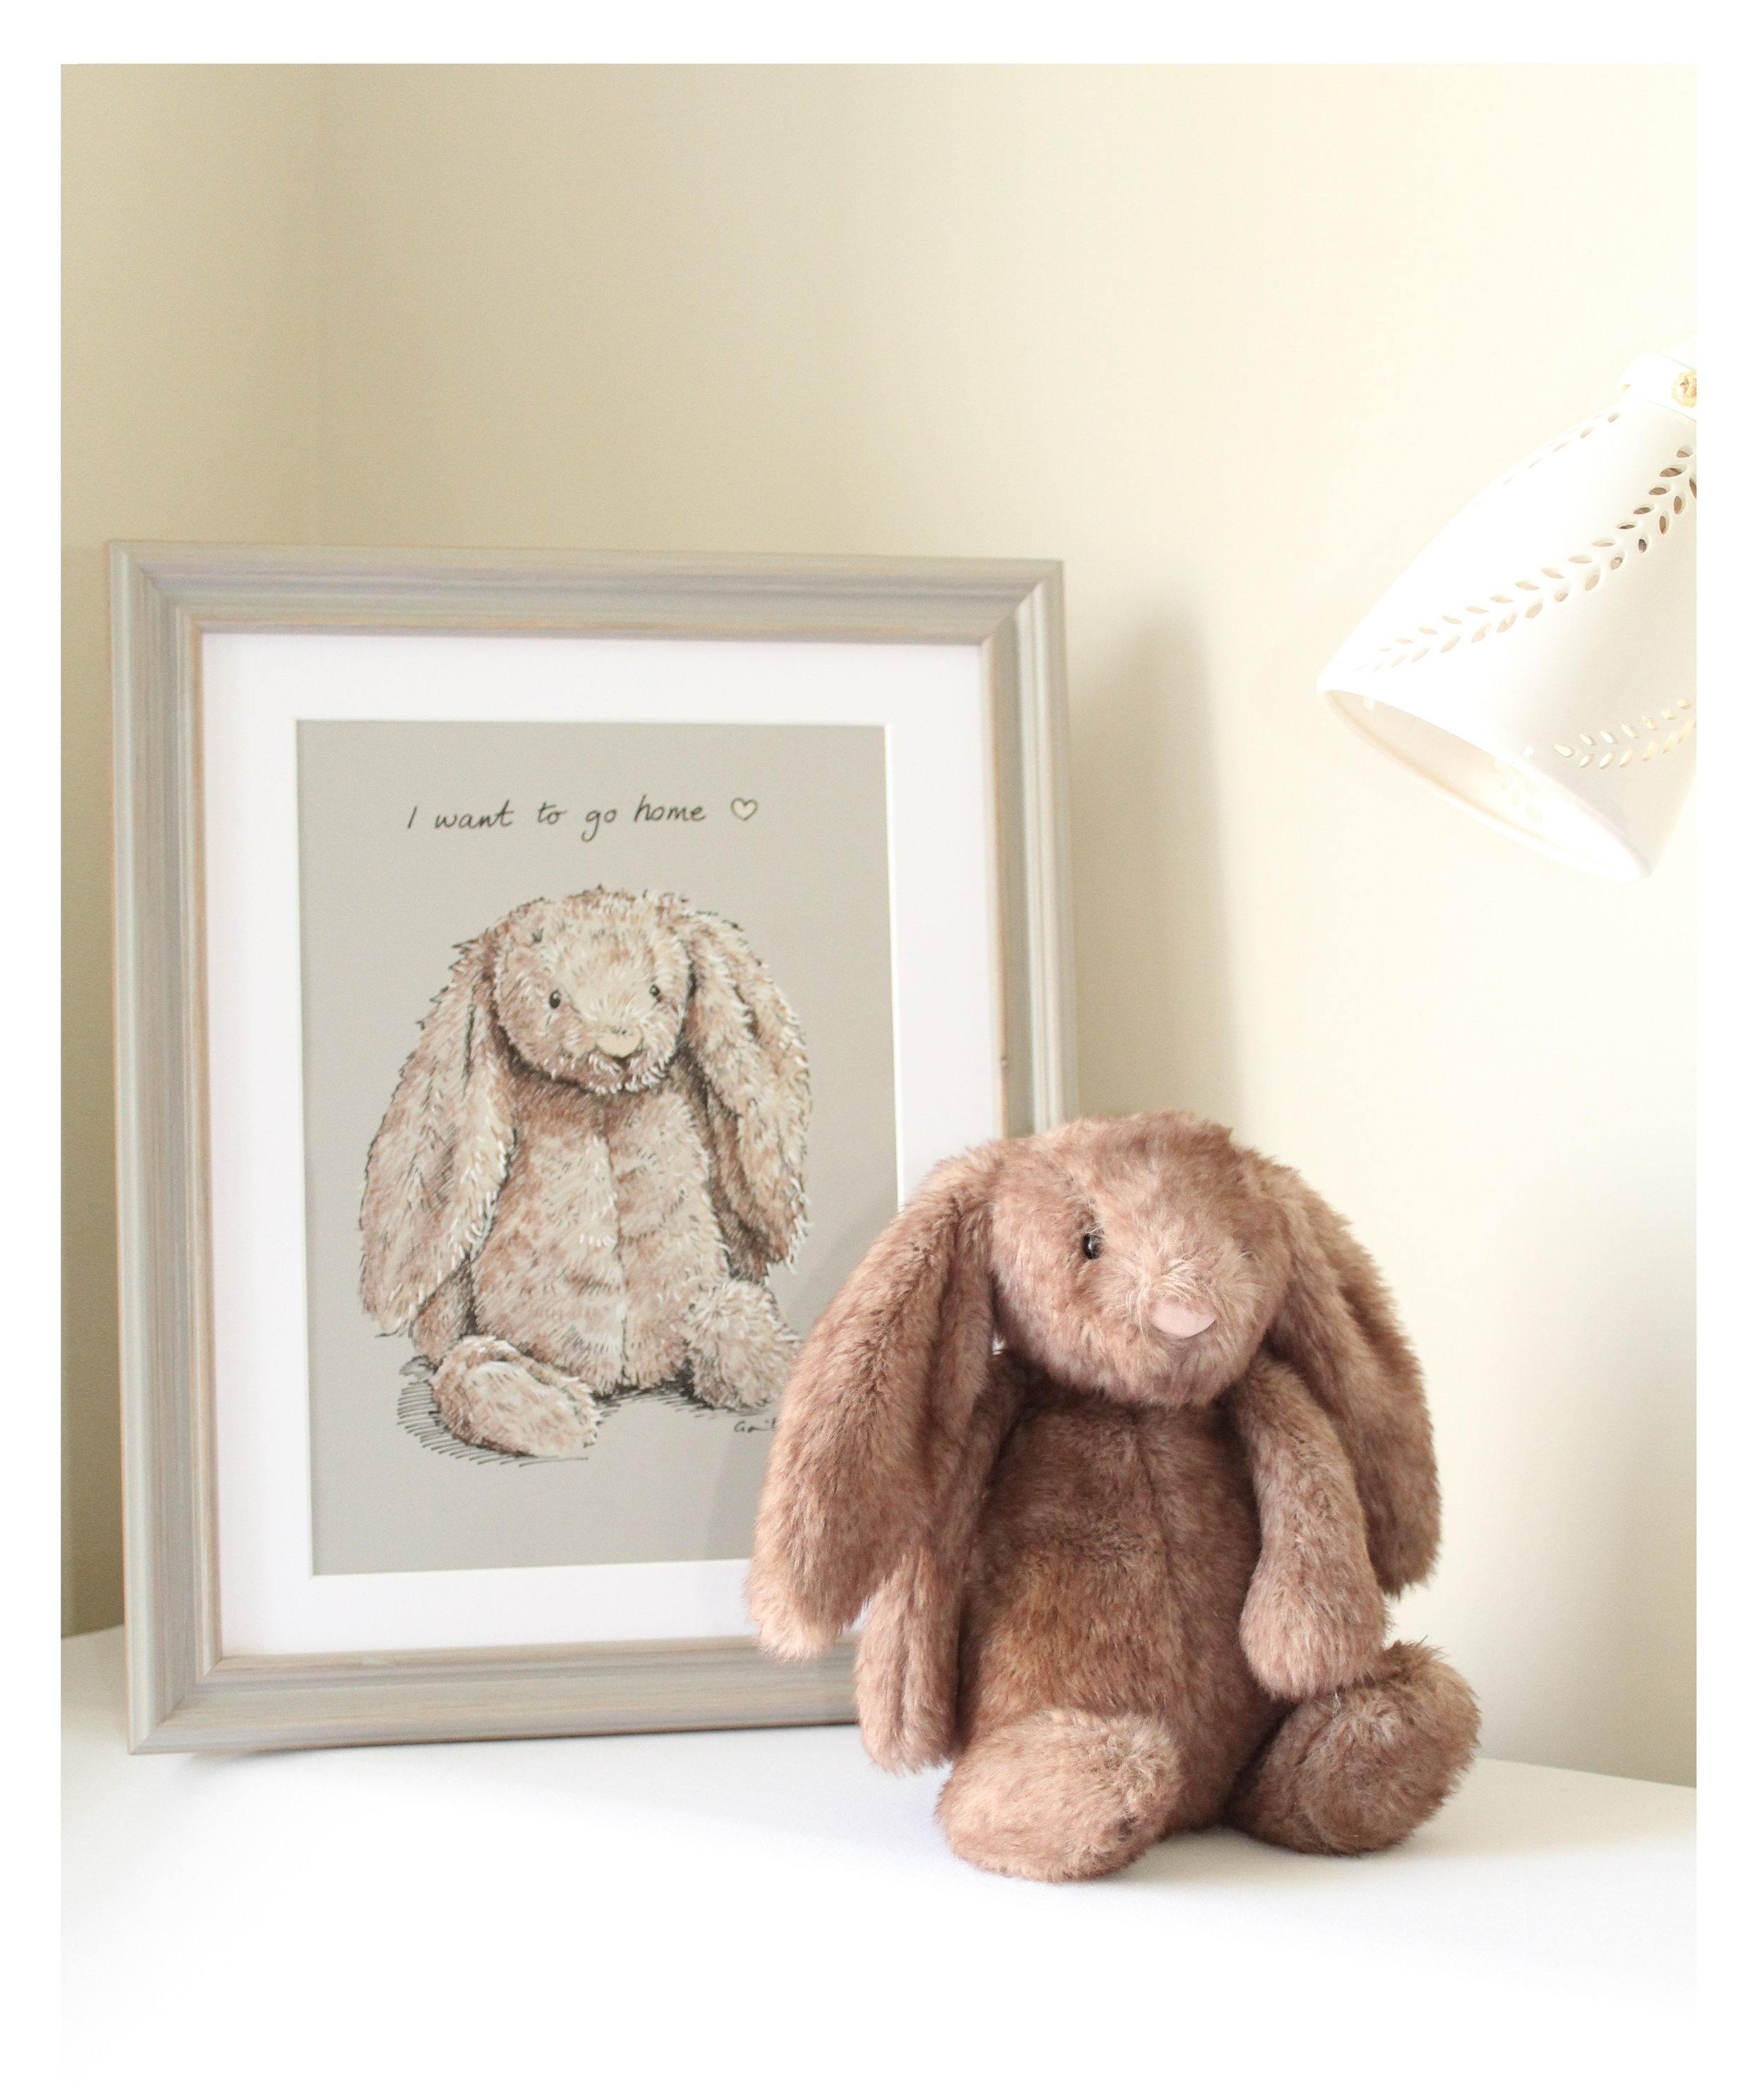 Lost toys - This beautiful bunny was found near the Soggy Rabbit warren in Bristol. Despite our efforts, Bunny hasn't been claimed, so we are giving him/her a home for now.We occasionally have orders to draw lost toys, using old photos or catalogue images.There's no substitute for the feel (and smell!) of a well loved toy, but a picture can sometimes fill the gap.Alternatively: